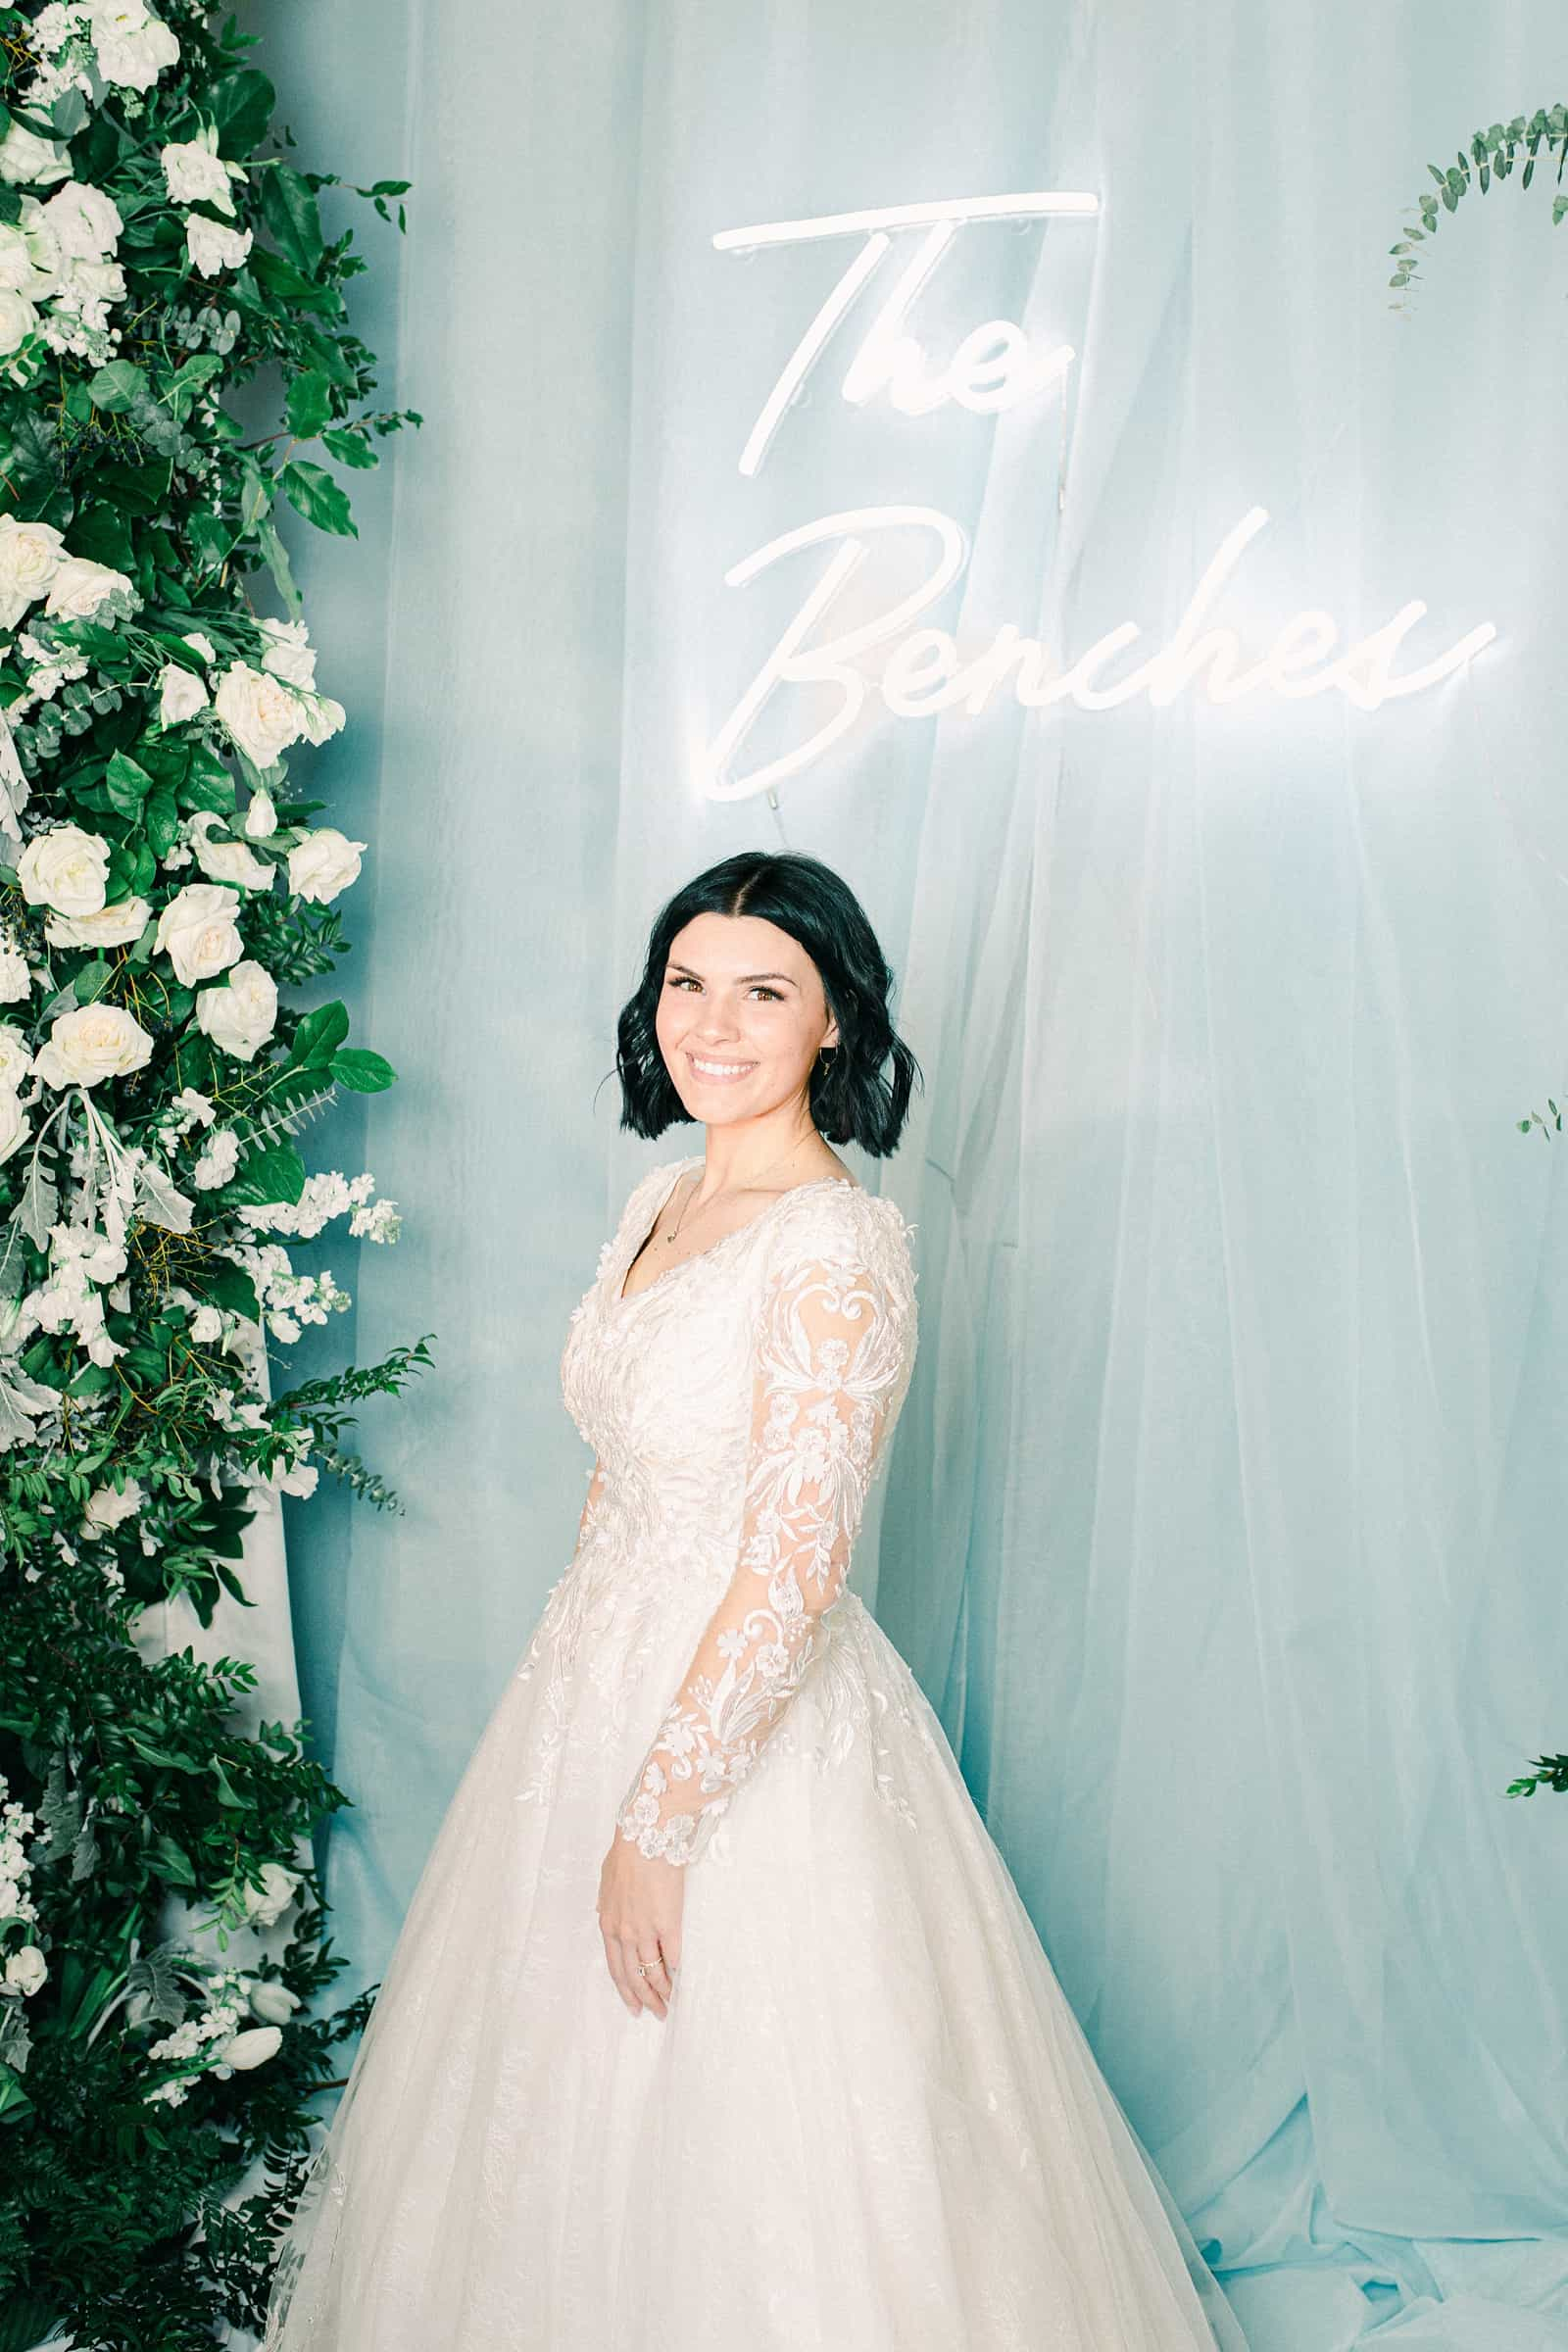 Winter wedding reception decor, bride in front of custom neon sign with last name